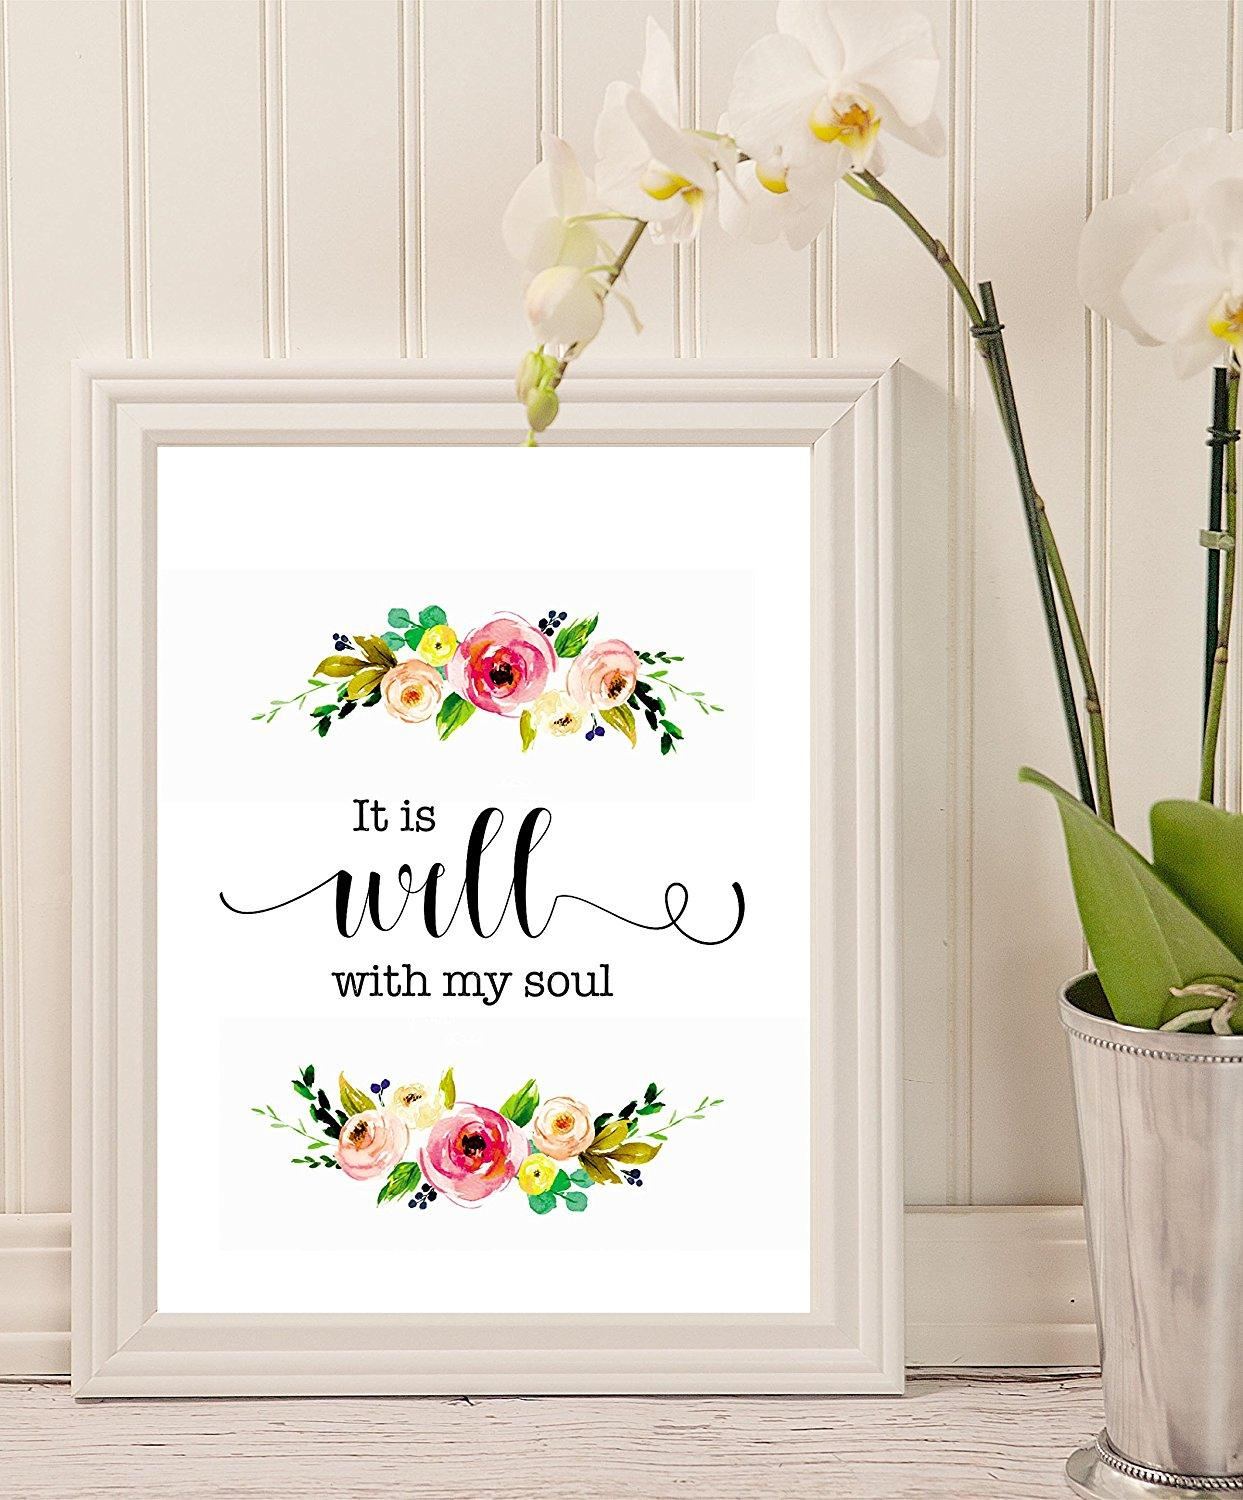 photograph relating to It is Well With My Soul Printable named It is effectively with my soul - Printable estimate, Christian Wall Print - wall artwork decor - marriage artwork - Scripture Print - floral estimates - Dwelling decor